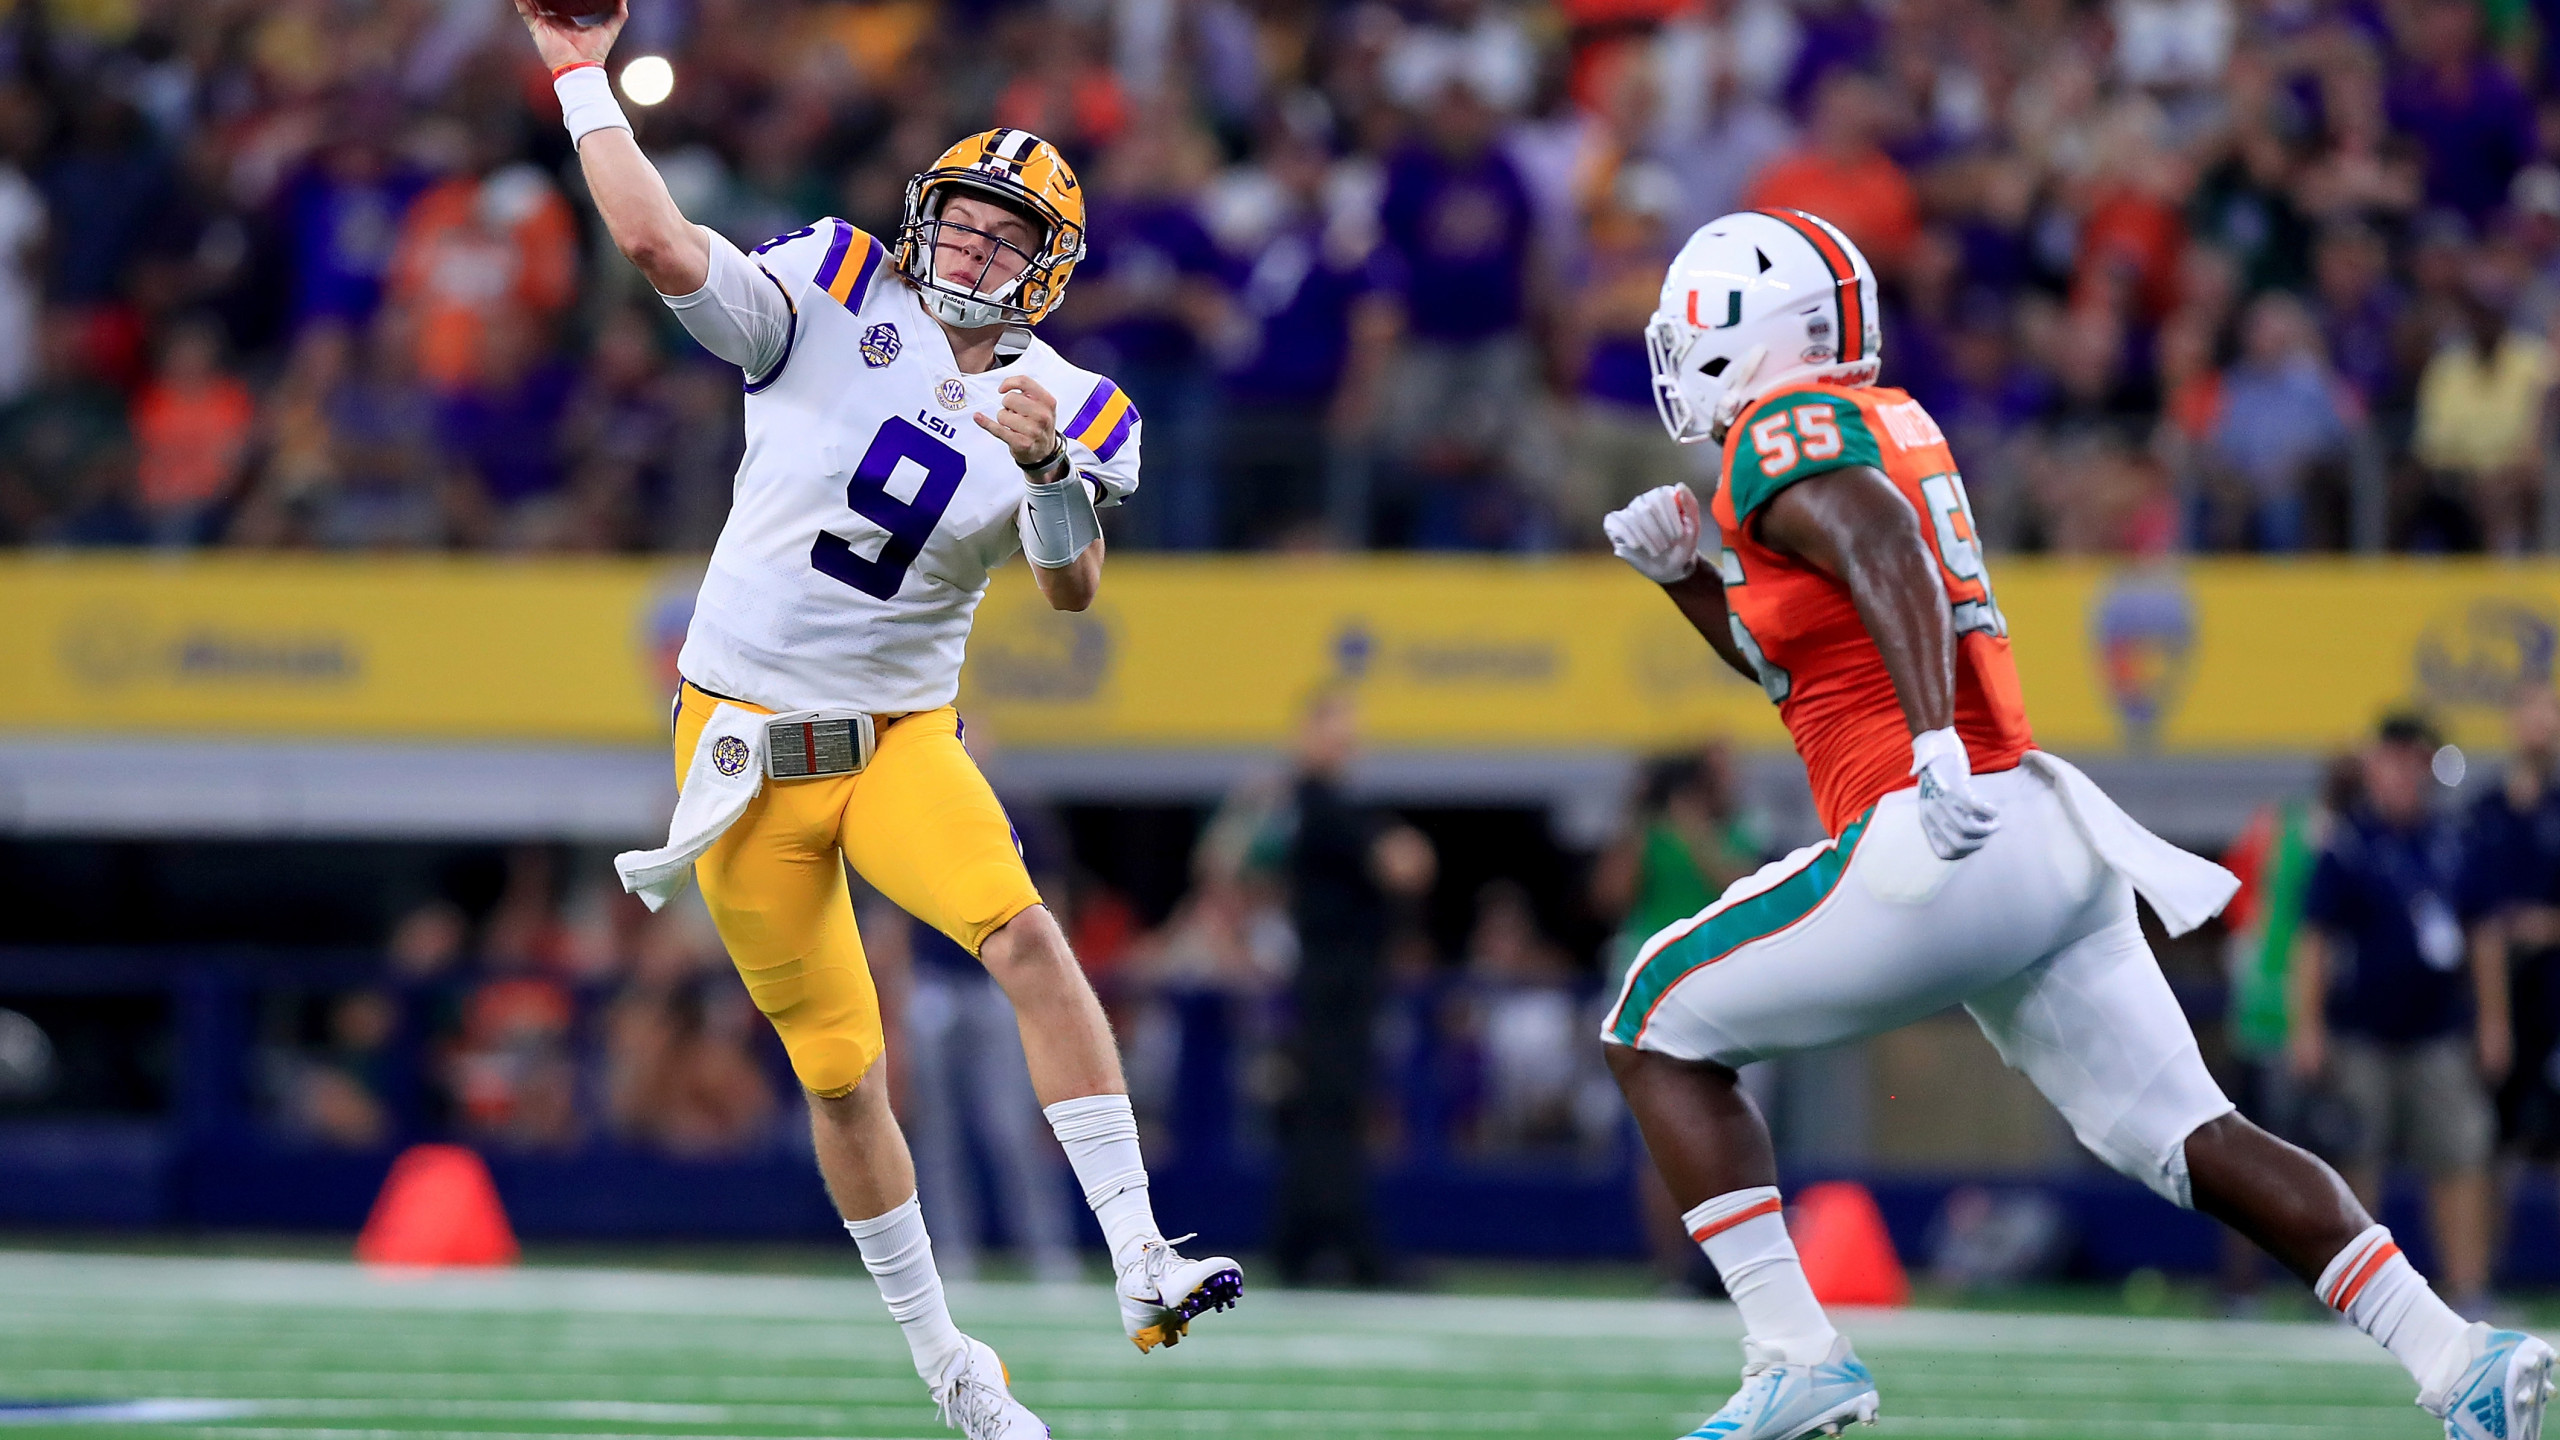 Orgeron Sees More Confidence Production Coming for QB Joe Burrow 2560x1440